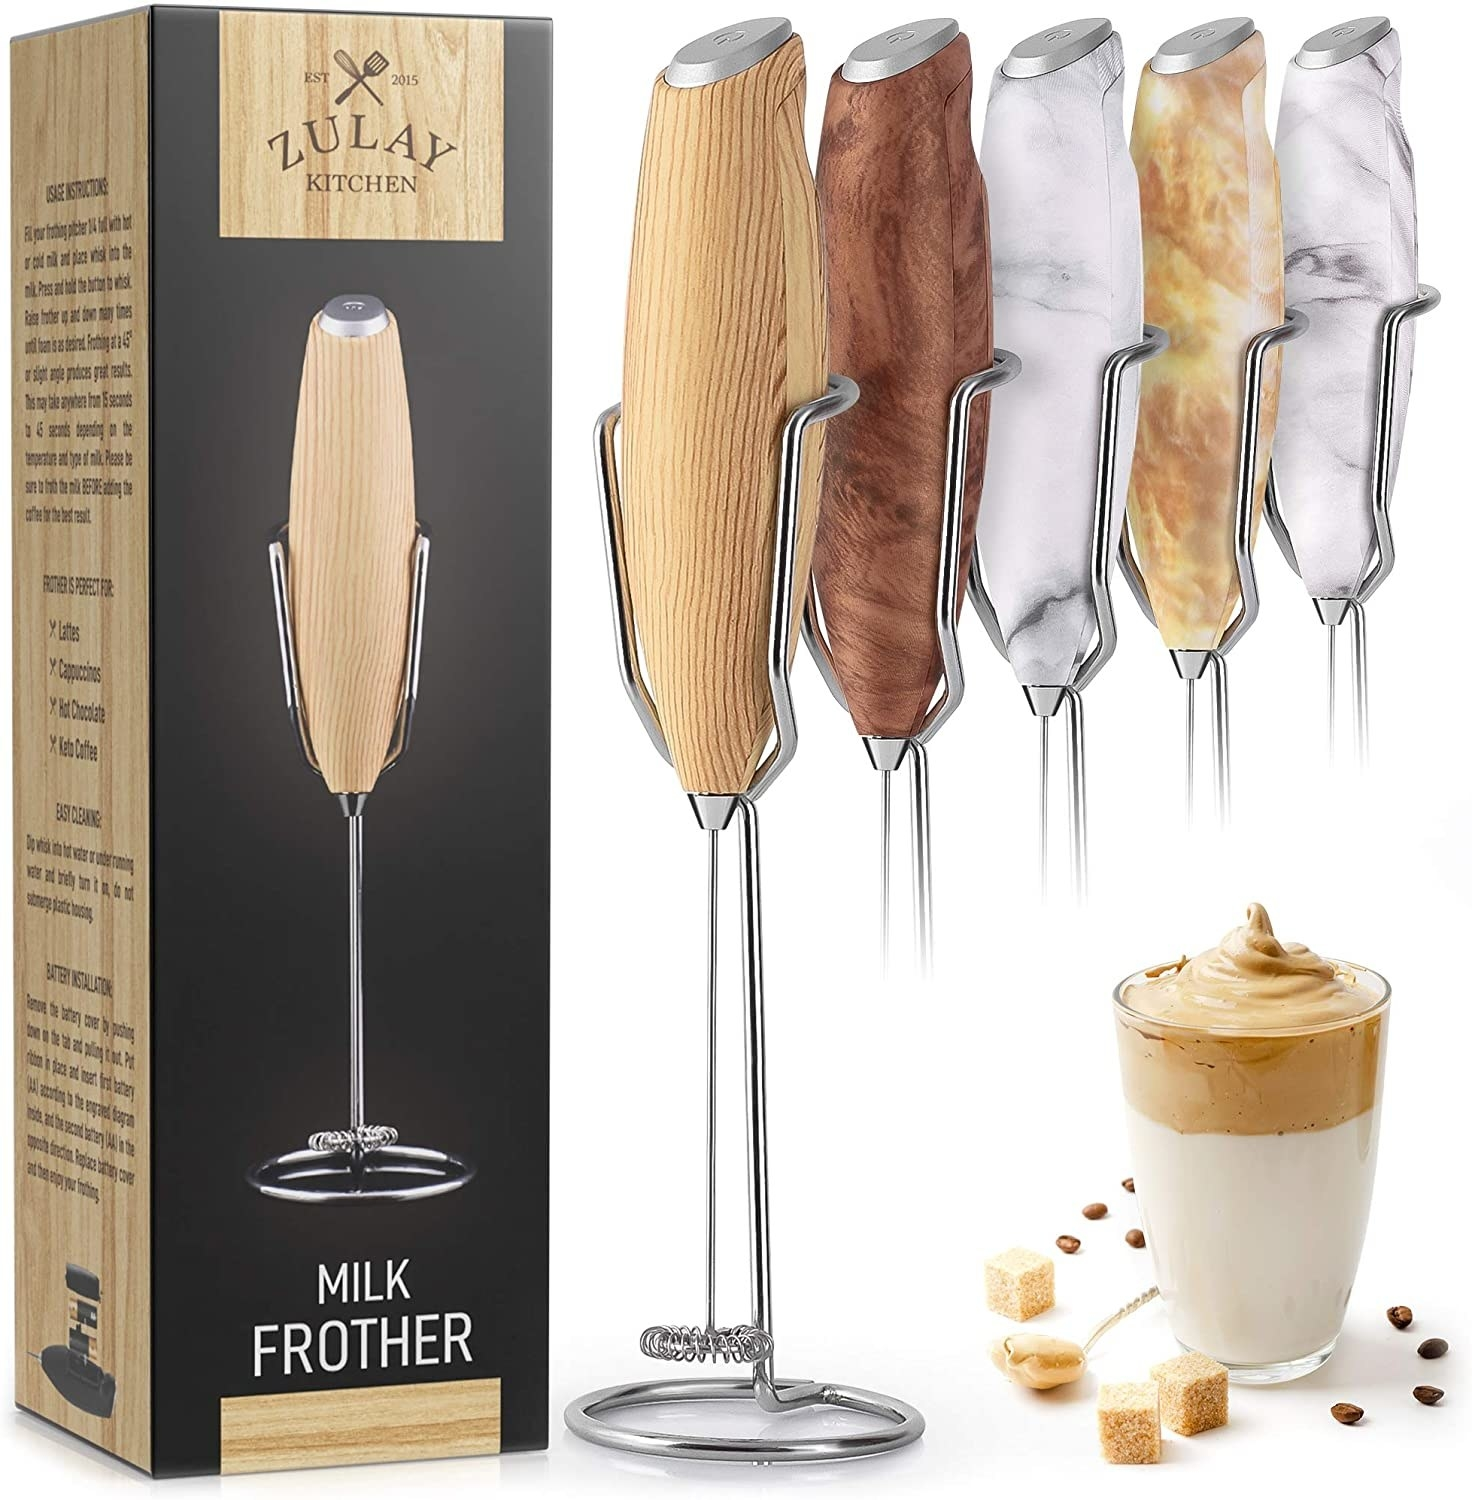 The milk frother which comes in different wood and stone finishes